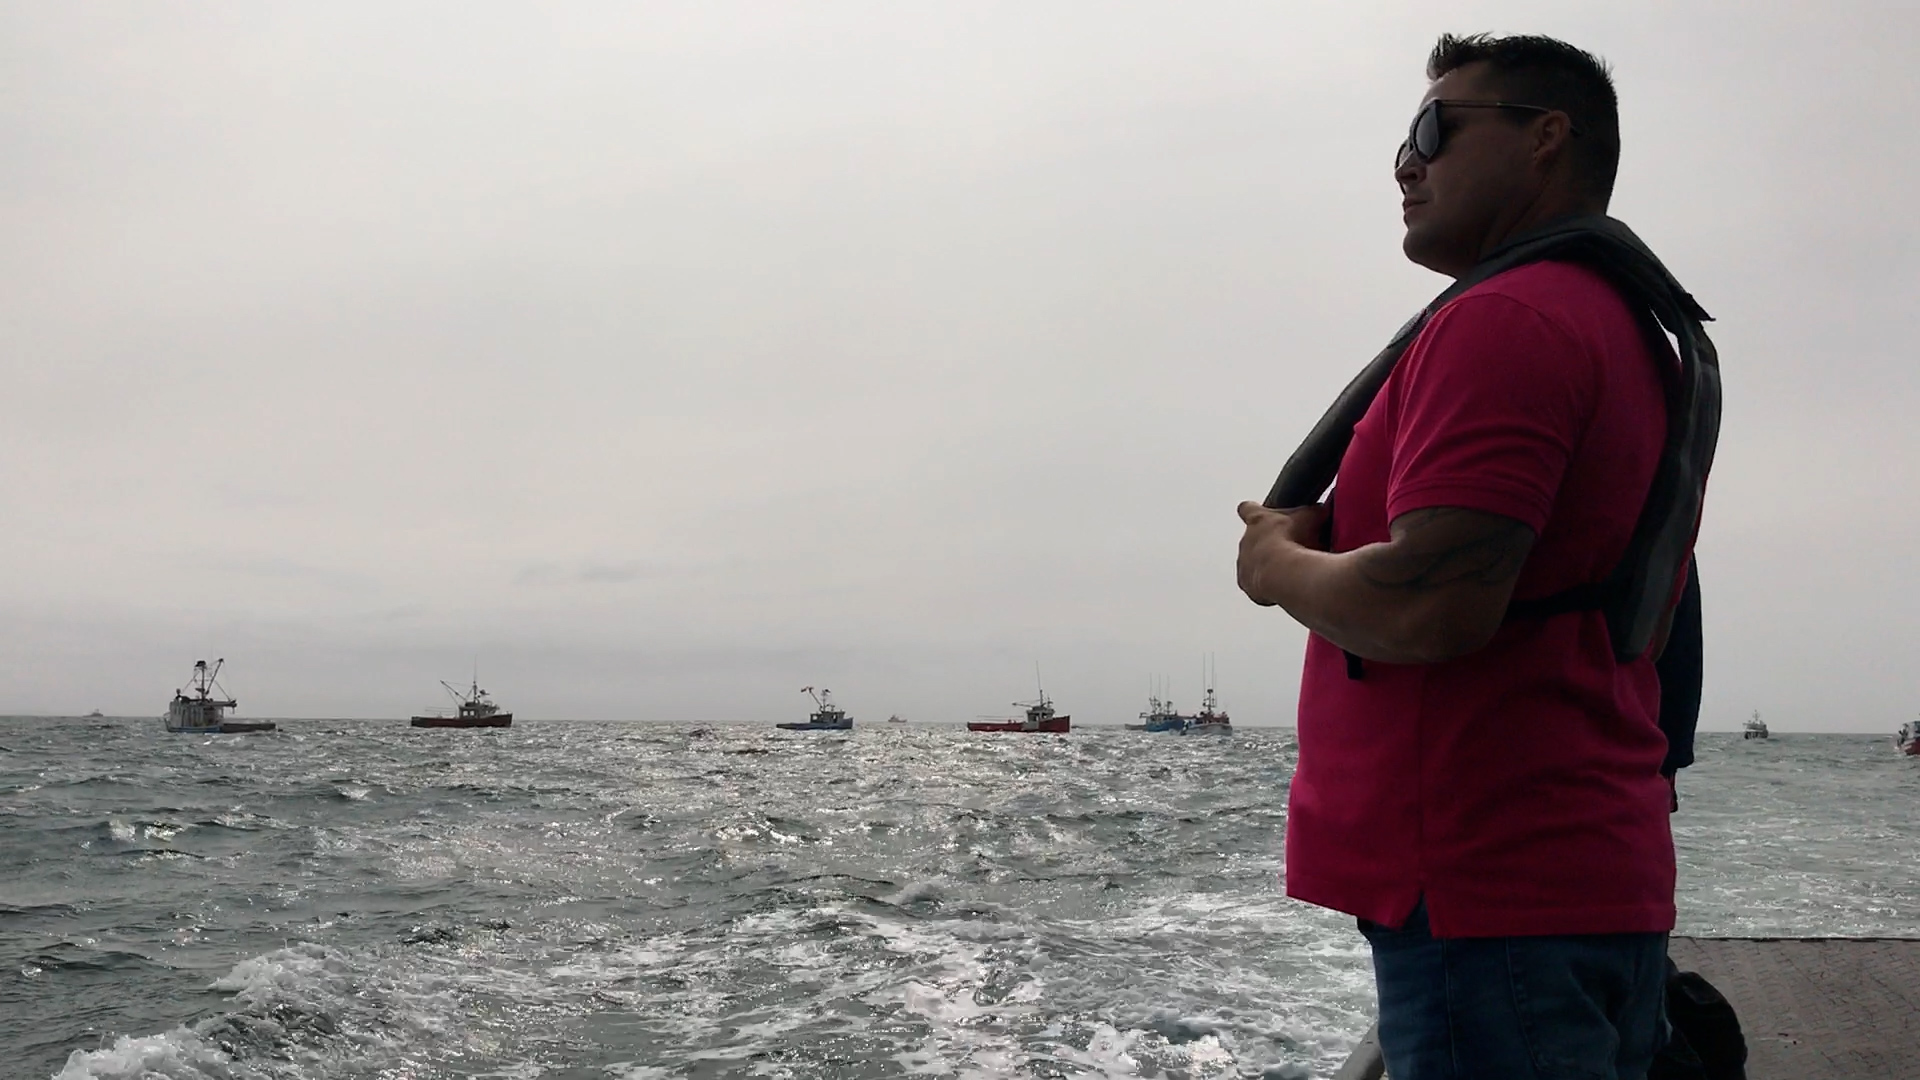 Brandon Maloney keeps an eye on commercial fishing boats as Mi'kmaw fishers exercise their treaty right to fish for a moderate livelihood.